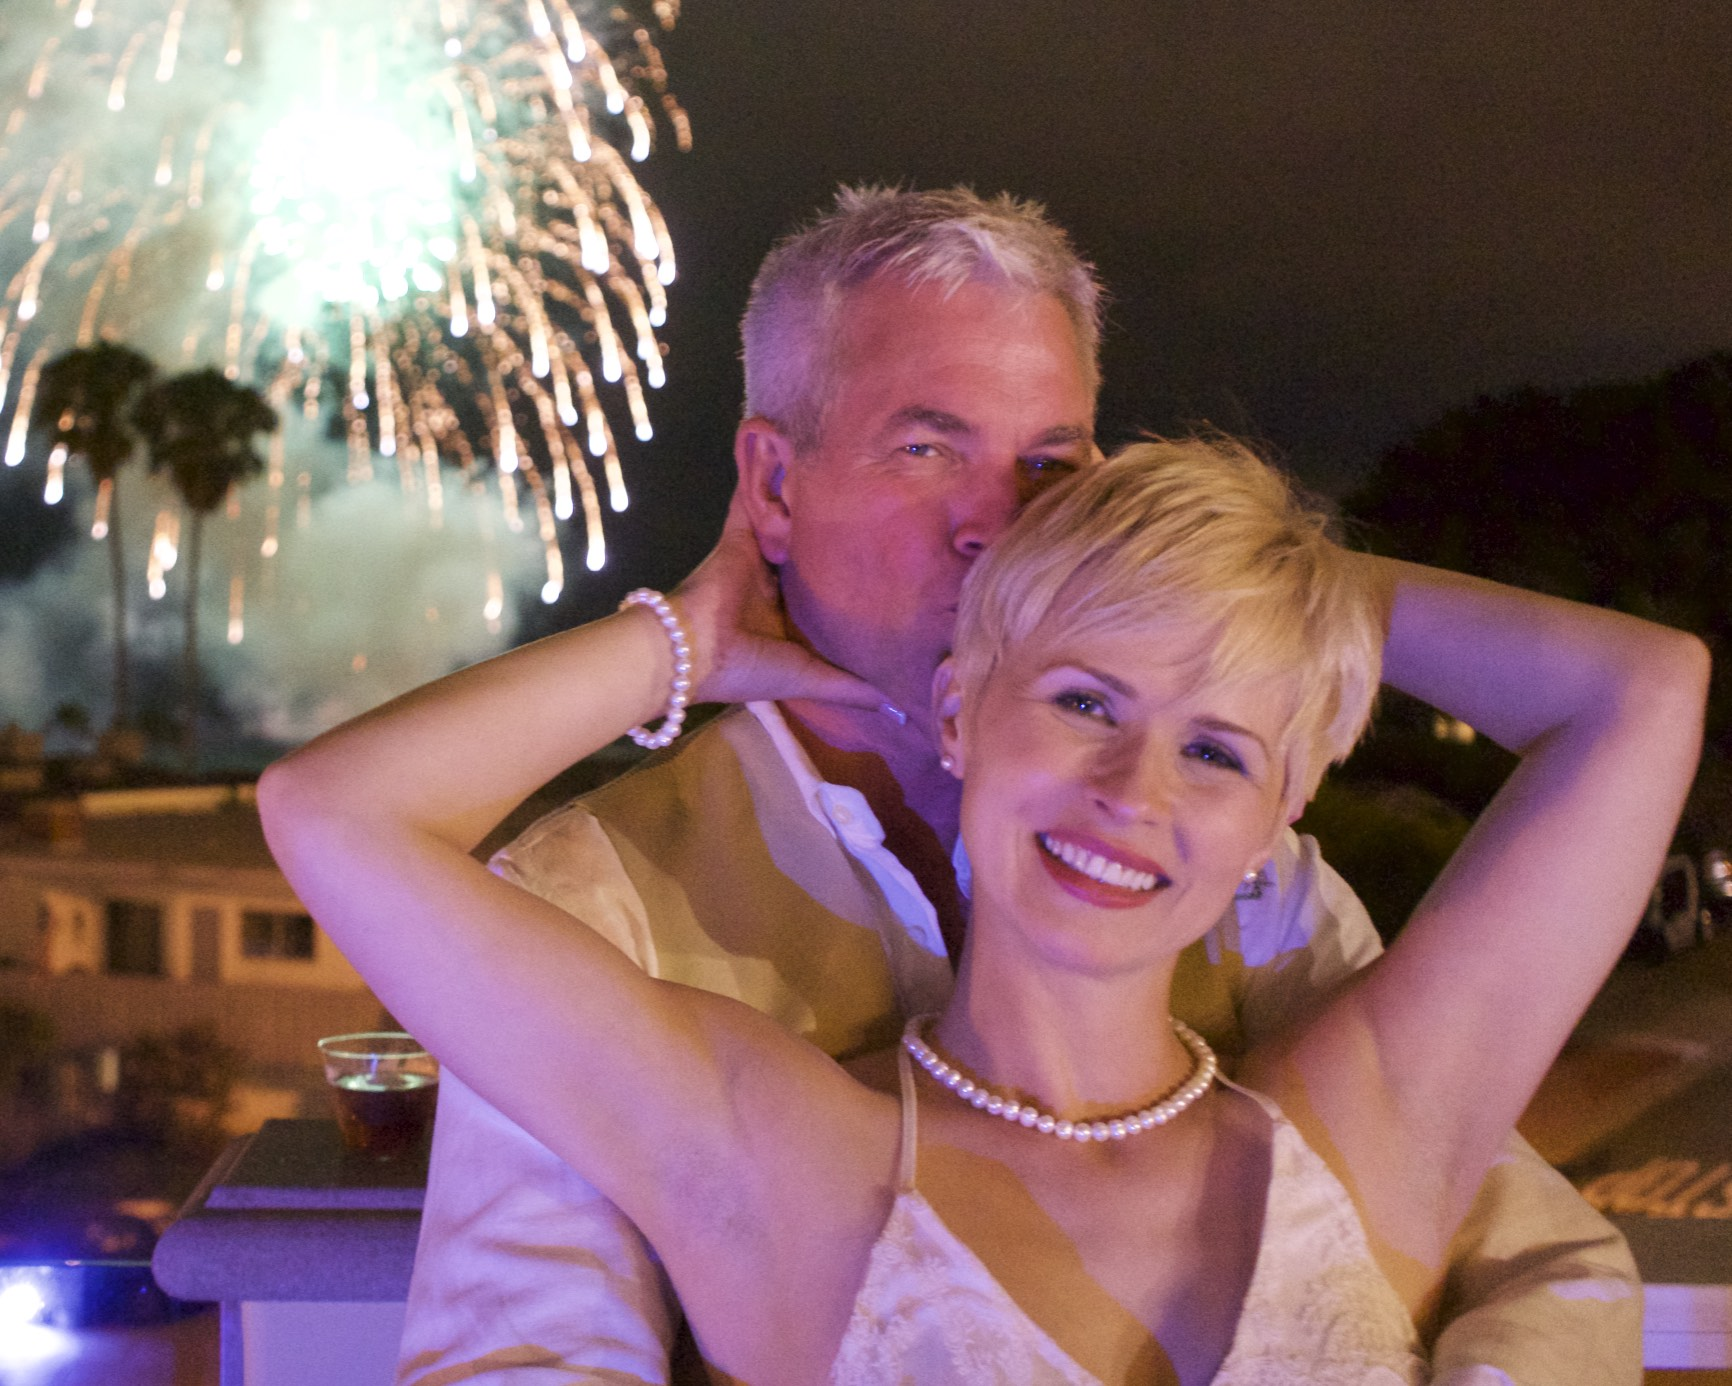 July 4th Wedding in San Clemente, Celebrities, Musians, Air Show, and fireworks…. WOW